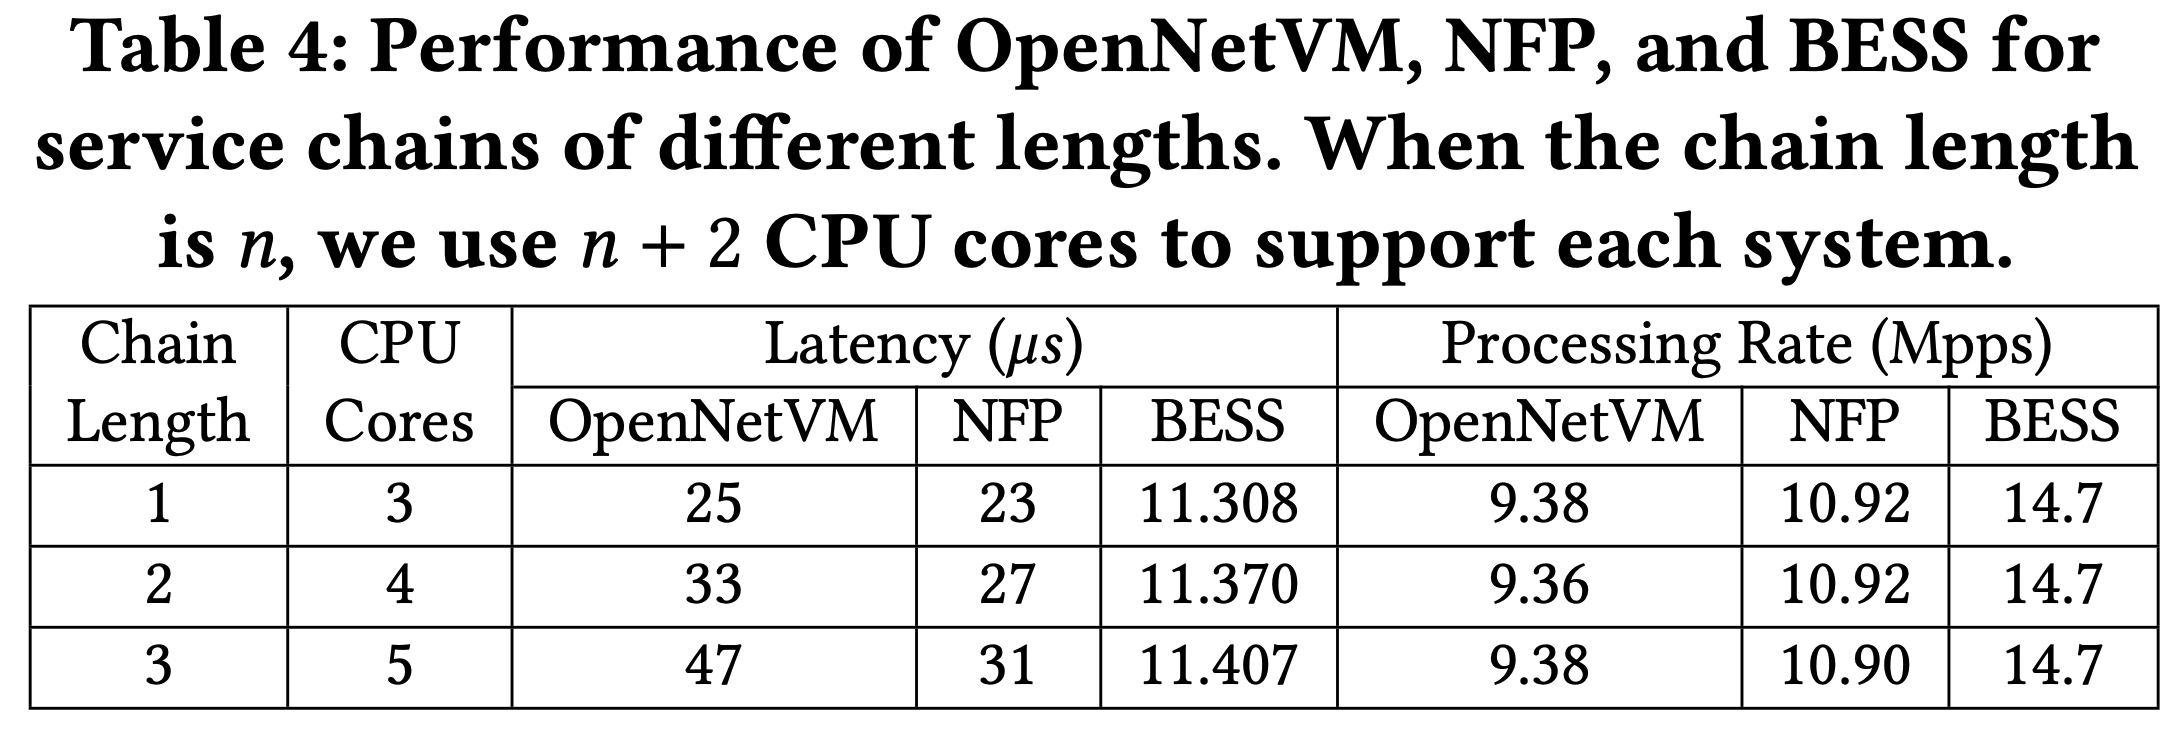 /img/NFP%20Enabling%20Network%20Function%20Parallelism%20in%20NFV/Untitled%2011.png